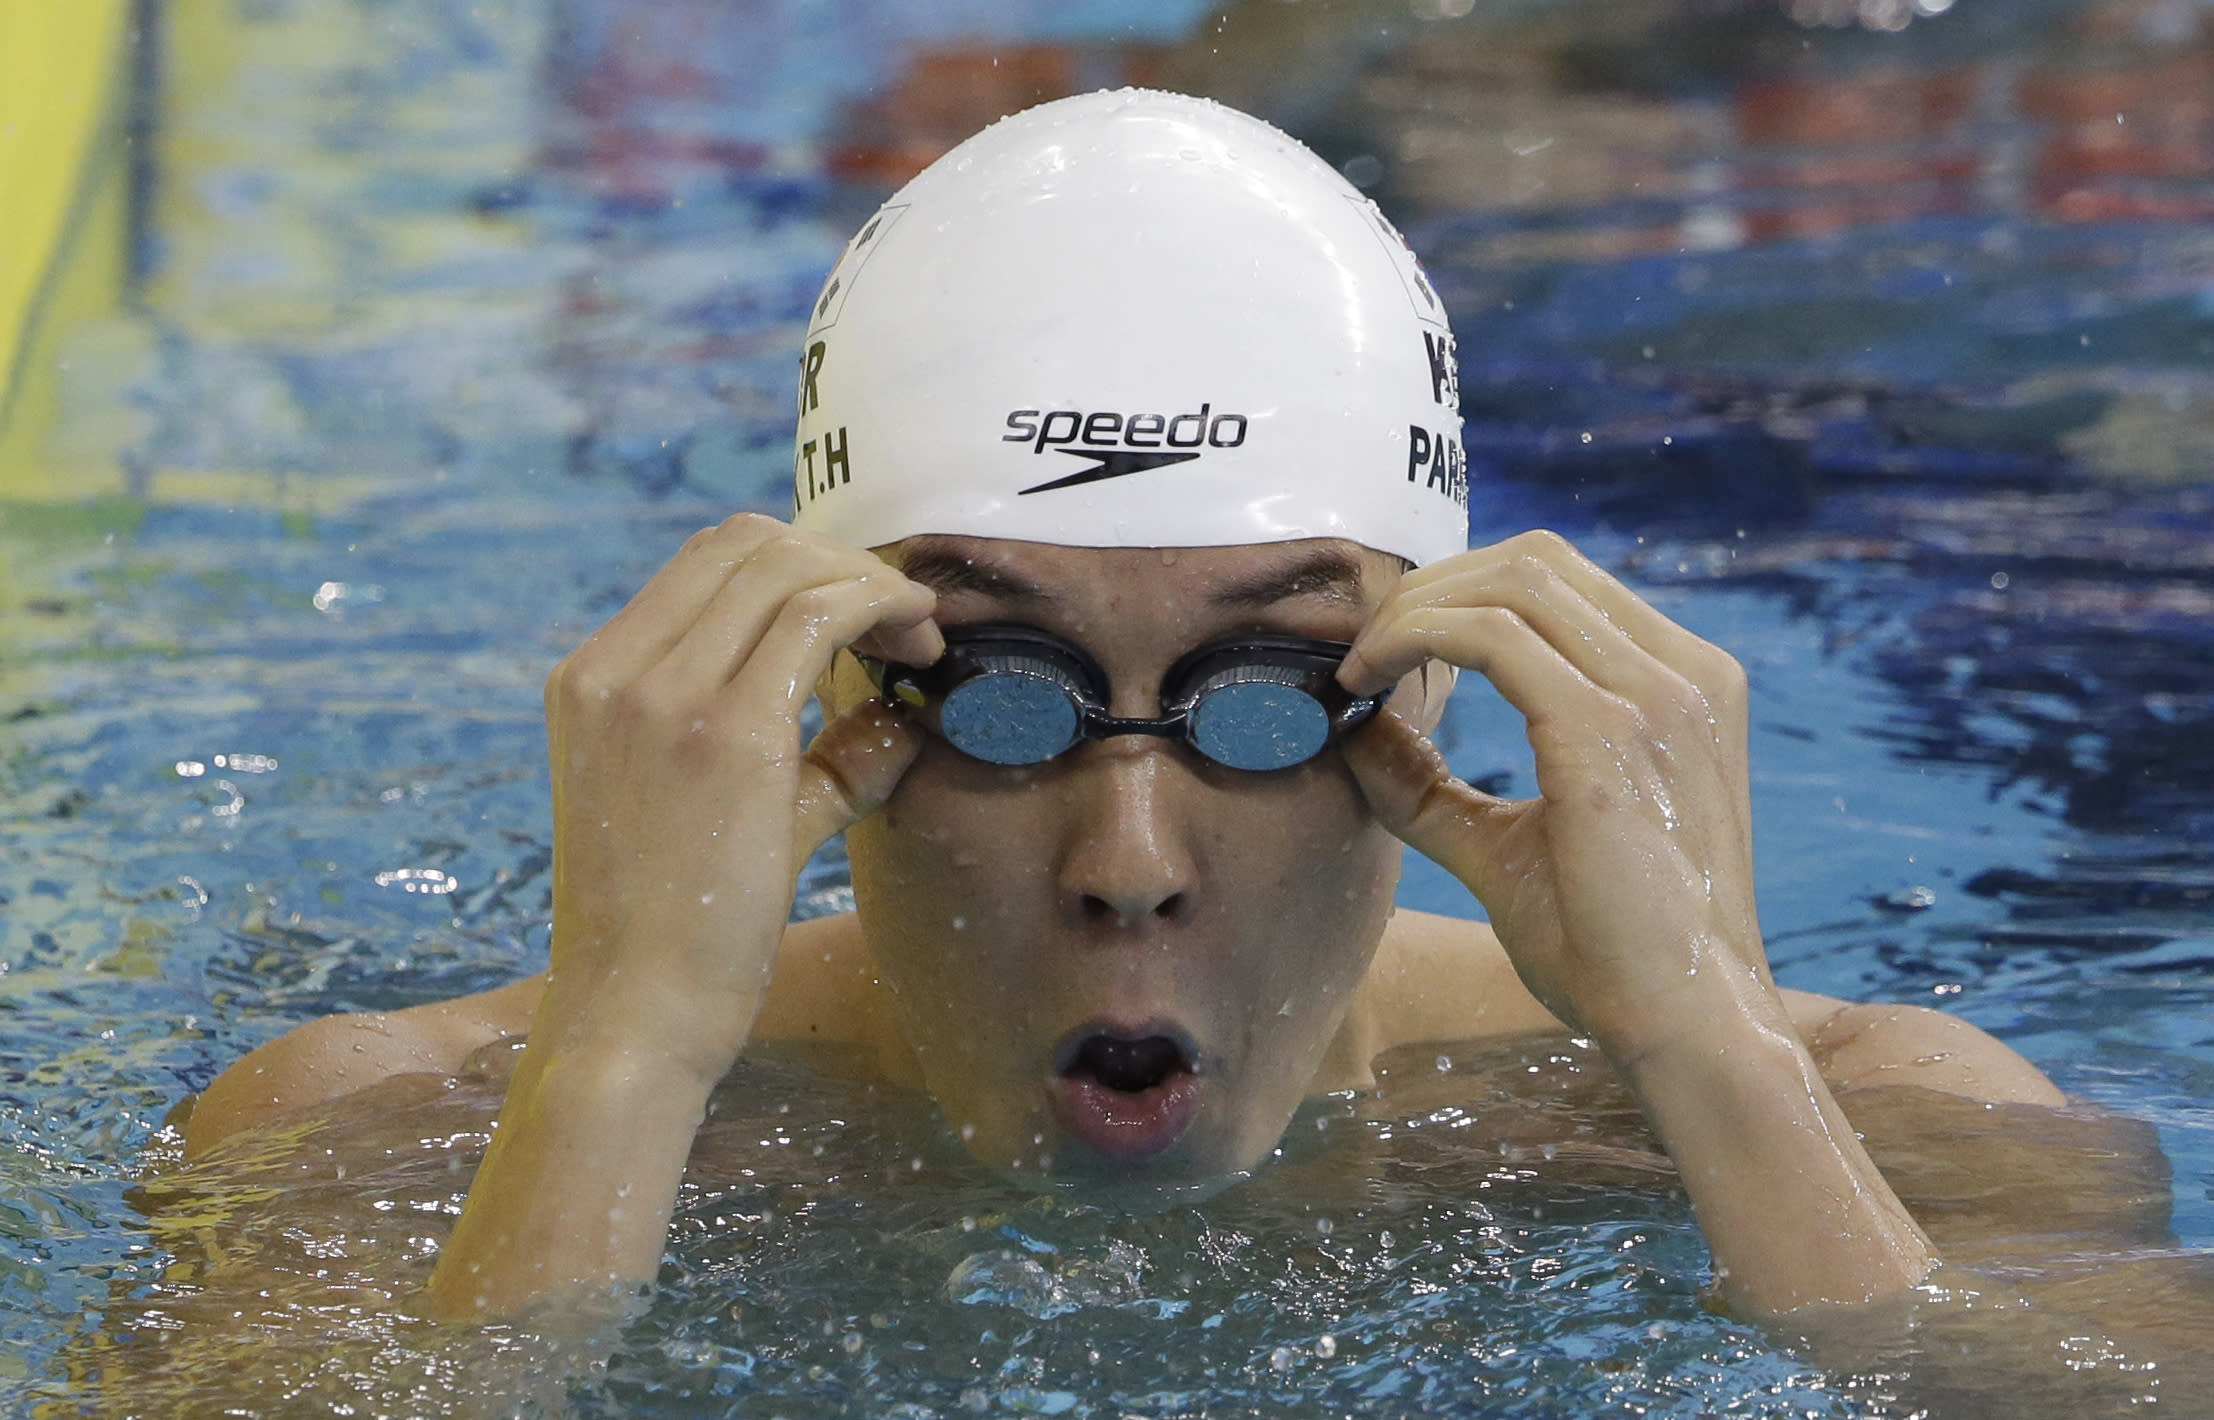 Former Olympic swimming champ Park apologizes for doping ban